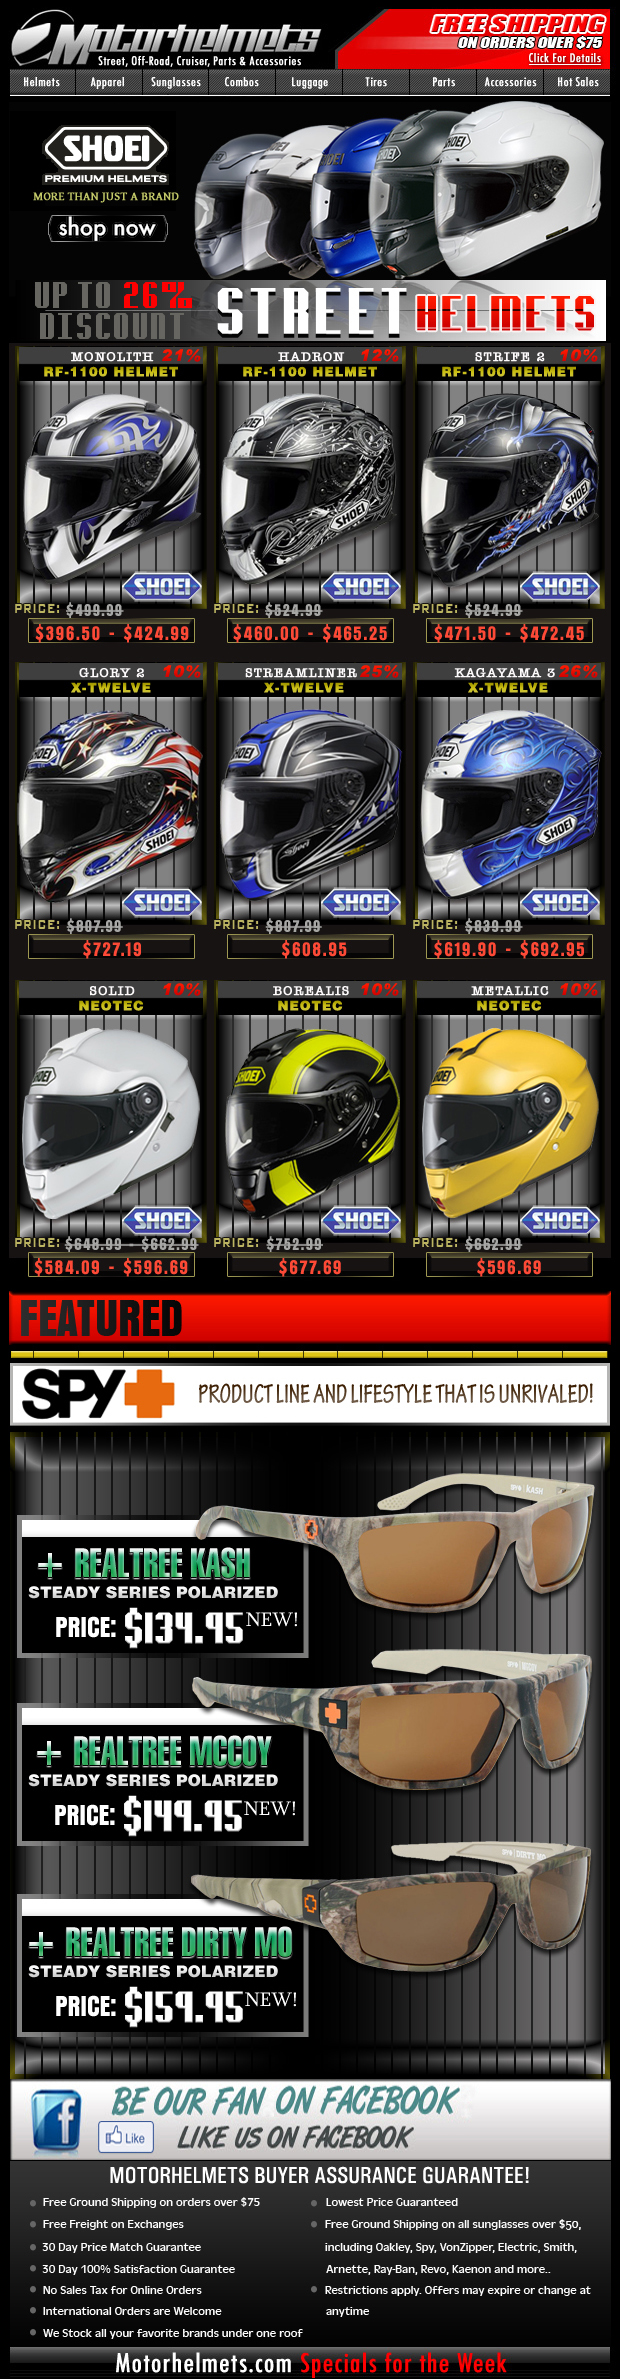 Shoei Spring Sale...up to 26% Off on Street Helmets!